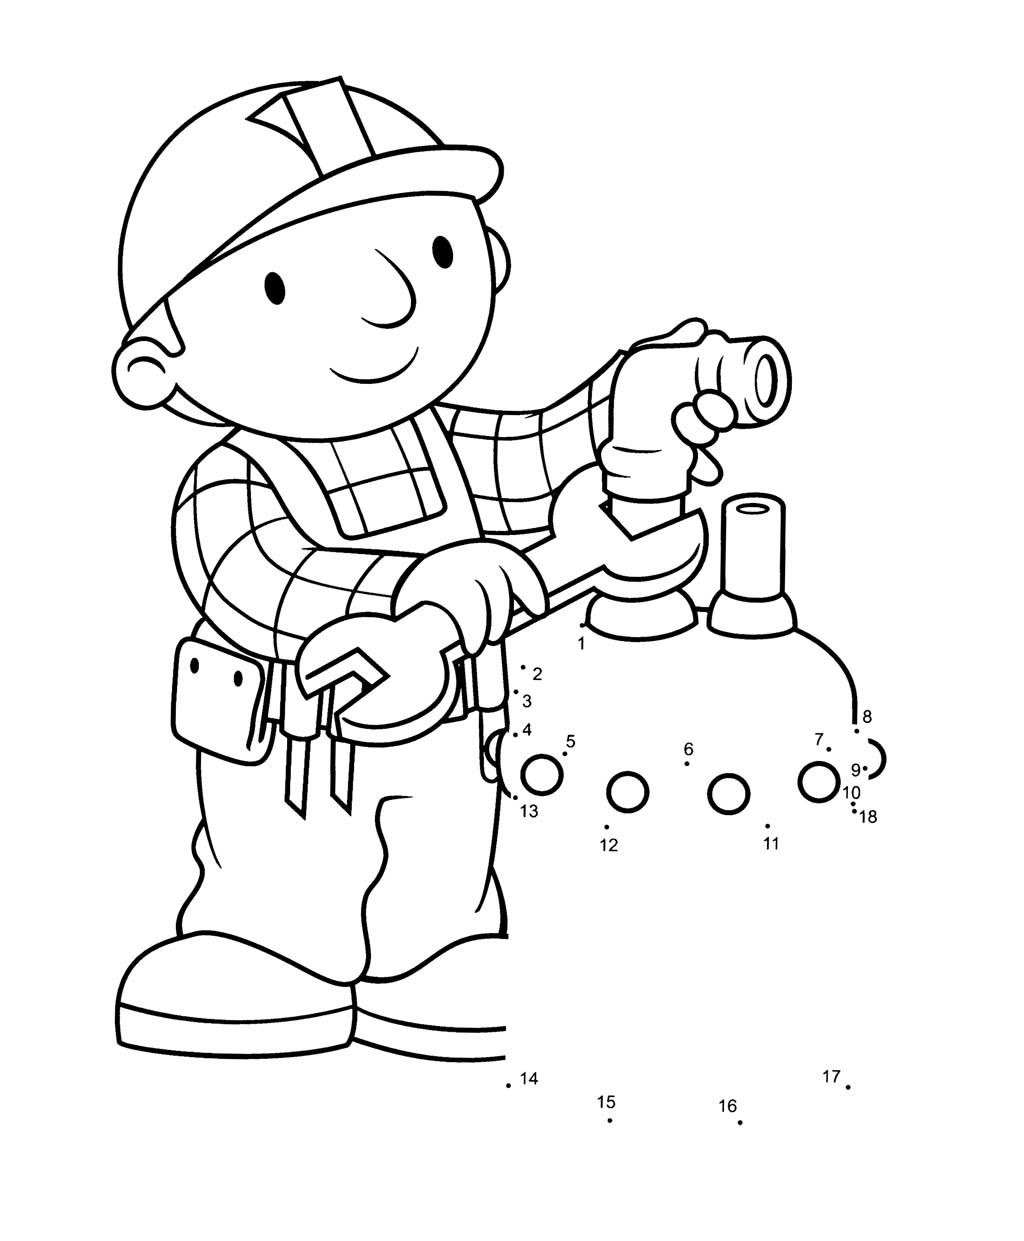 Bob The Builder Fix Tap Water Coloring Page For Kids